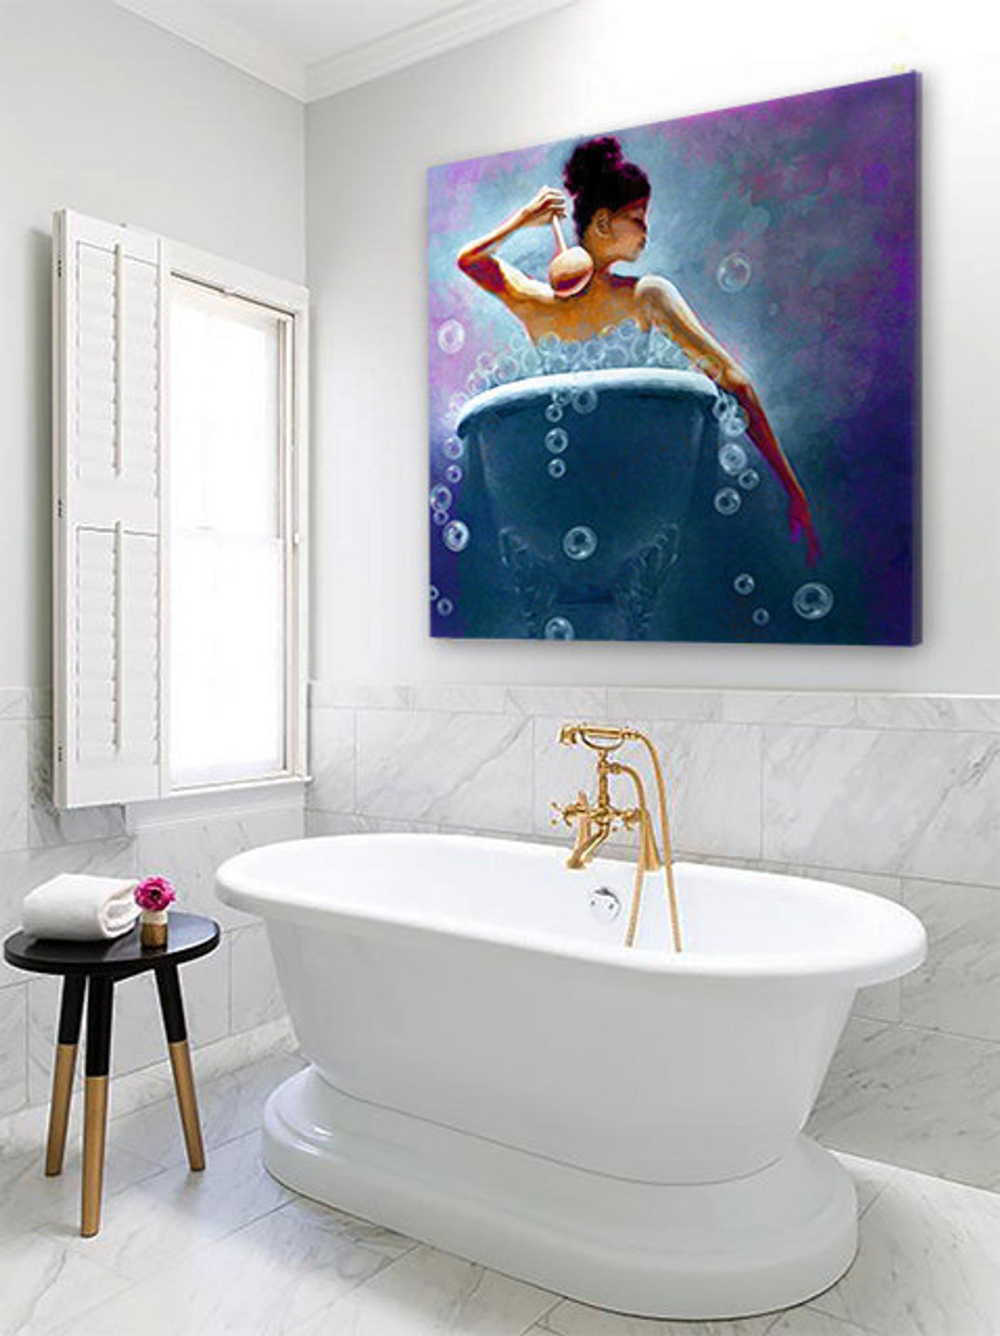 Ebony Bubbles African American Art Bathroom Wall Art Bath Etsy African American Wall Art Bath Wall Art African American Art